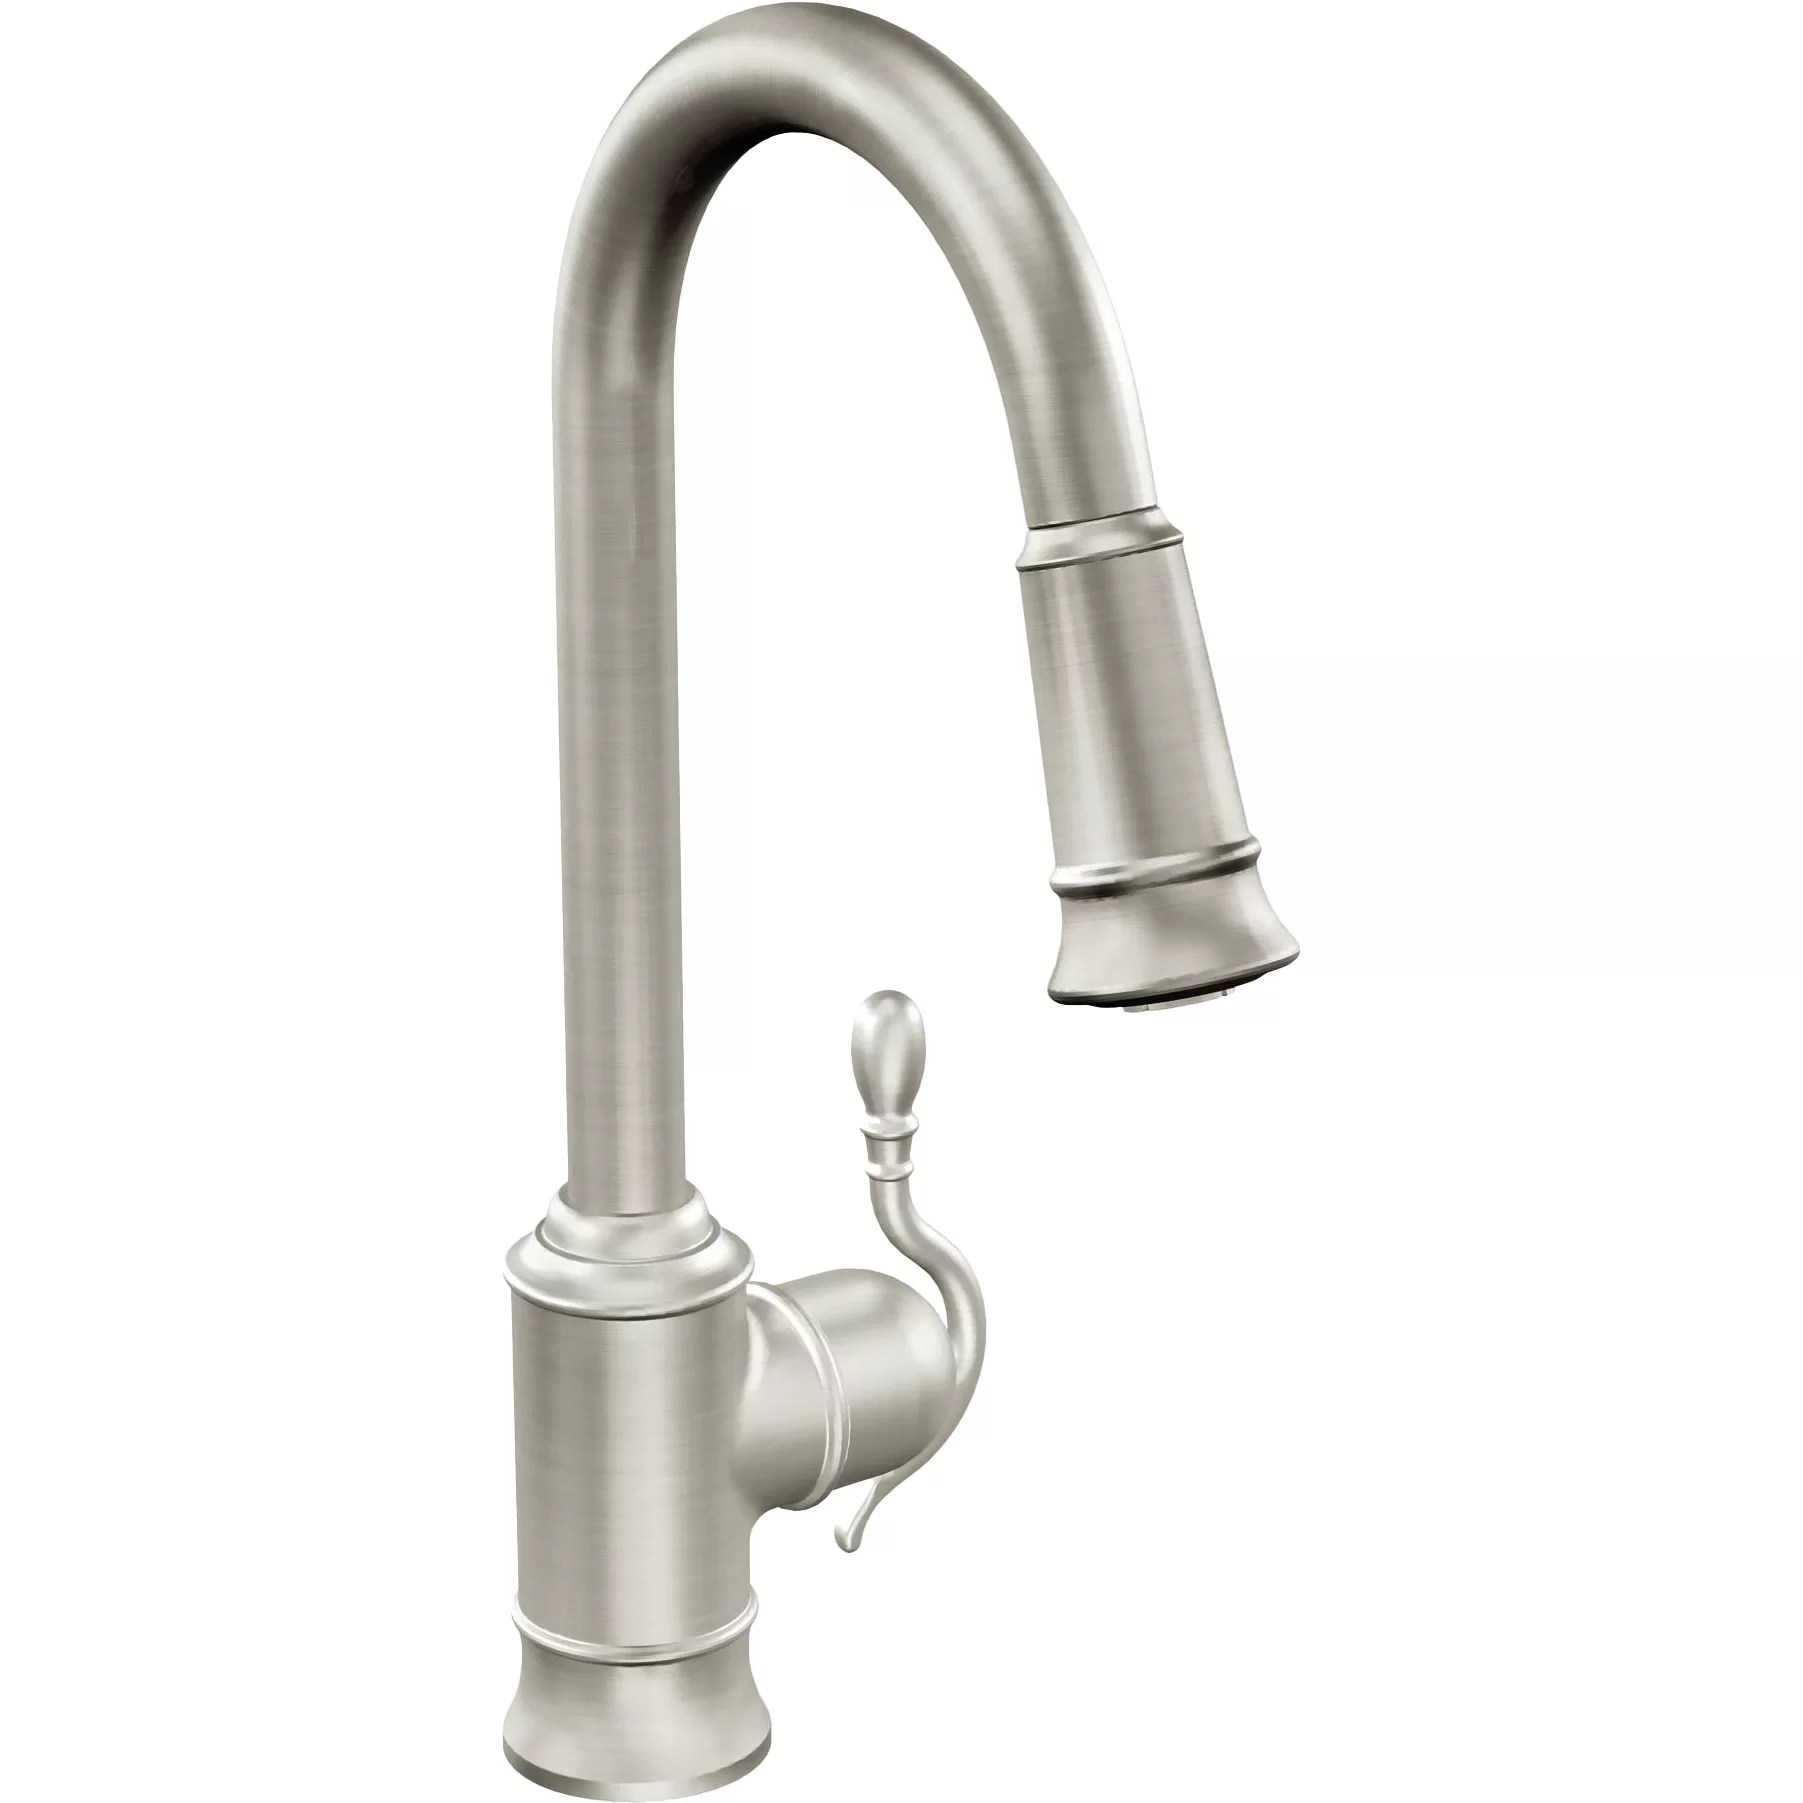 moen hands free kitchen faucet tiles for woodmere single handle hole